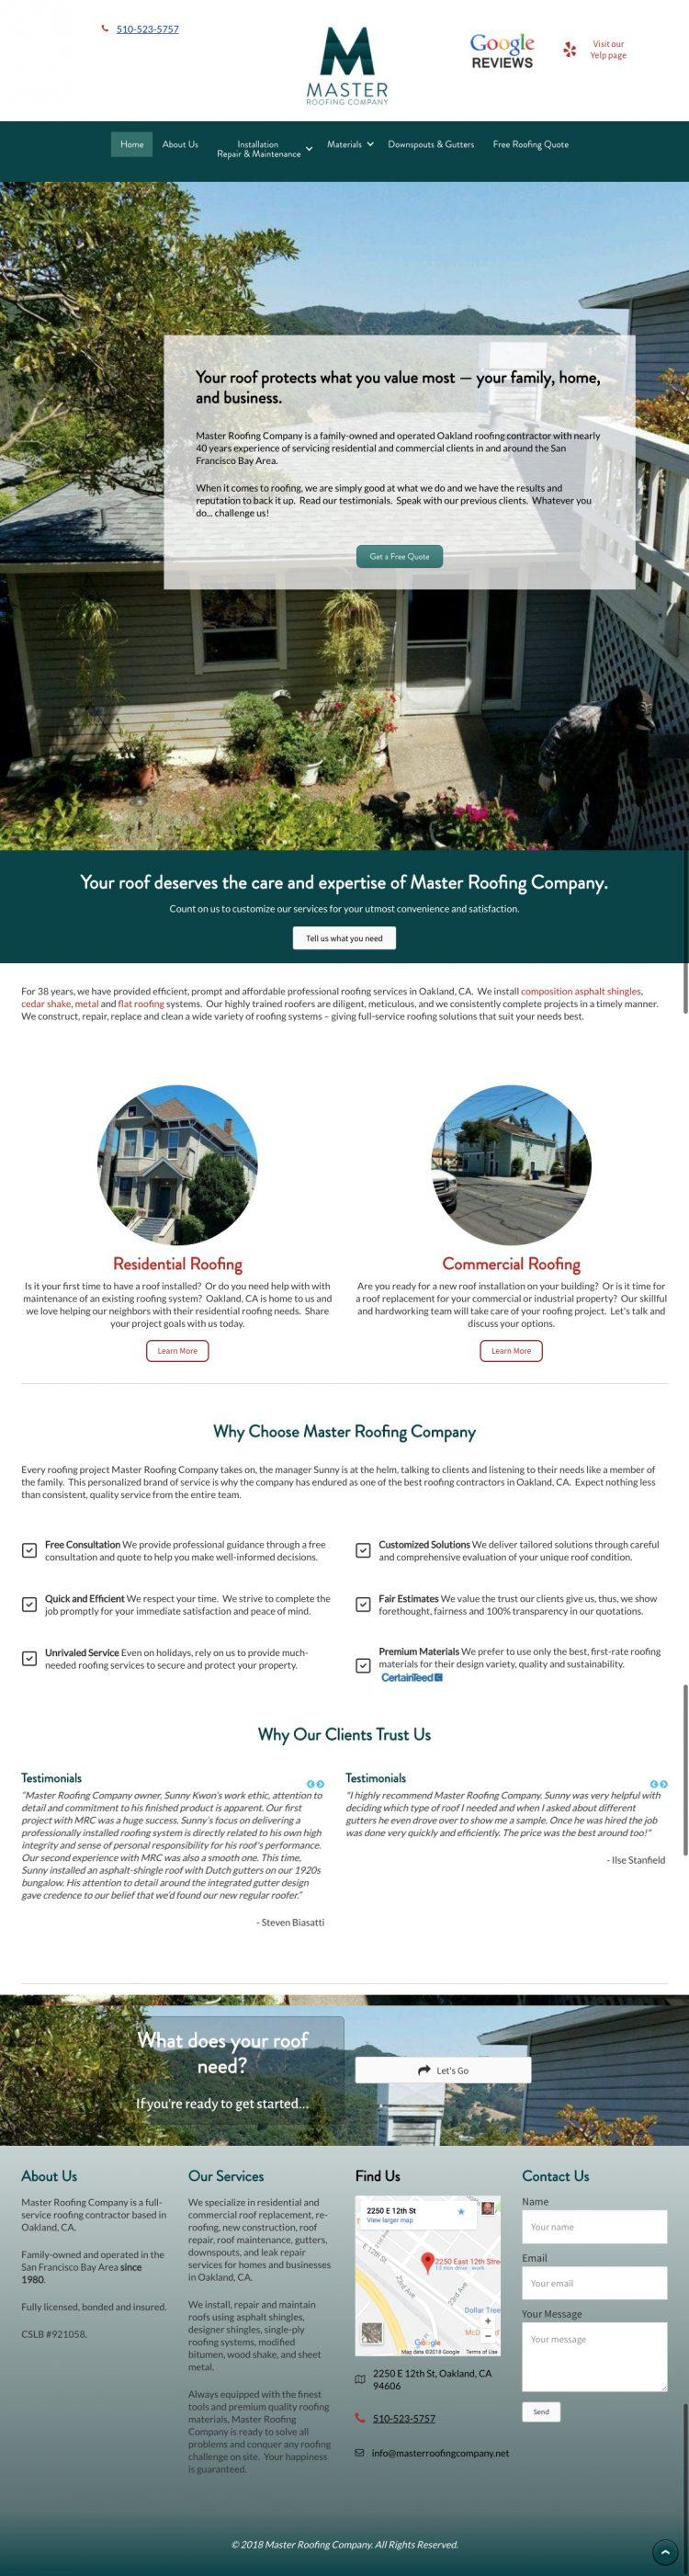 Master Roofing Company homepage screenshot